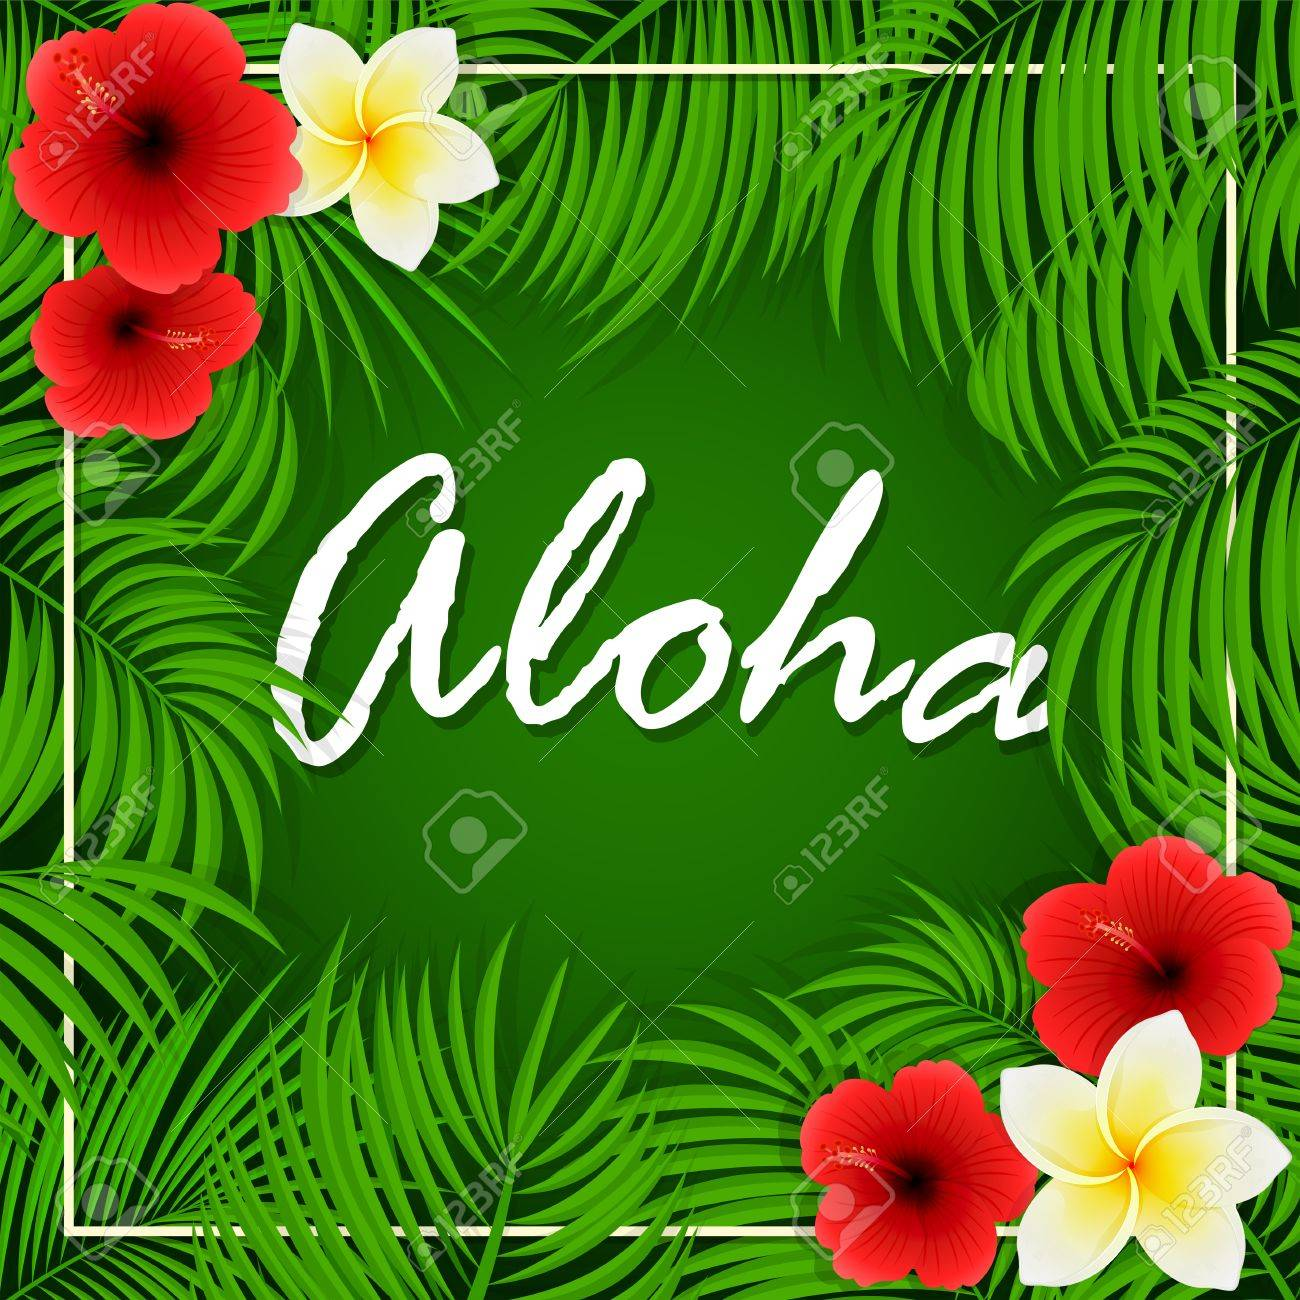 Summer background with inscription of aloha palm leaves and summer background with inscription of aloha palm leaves and hawaiian flowers frangipani and hibiscus izmirmasajfo Image collections